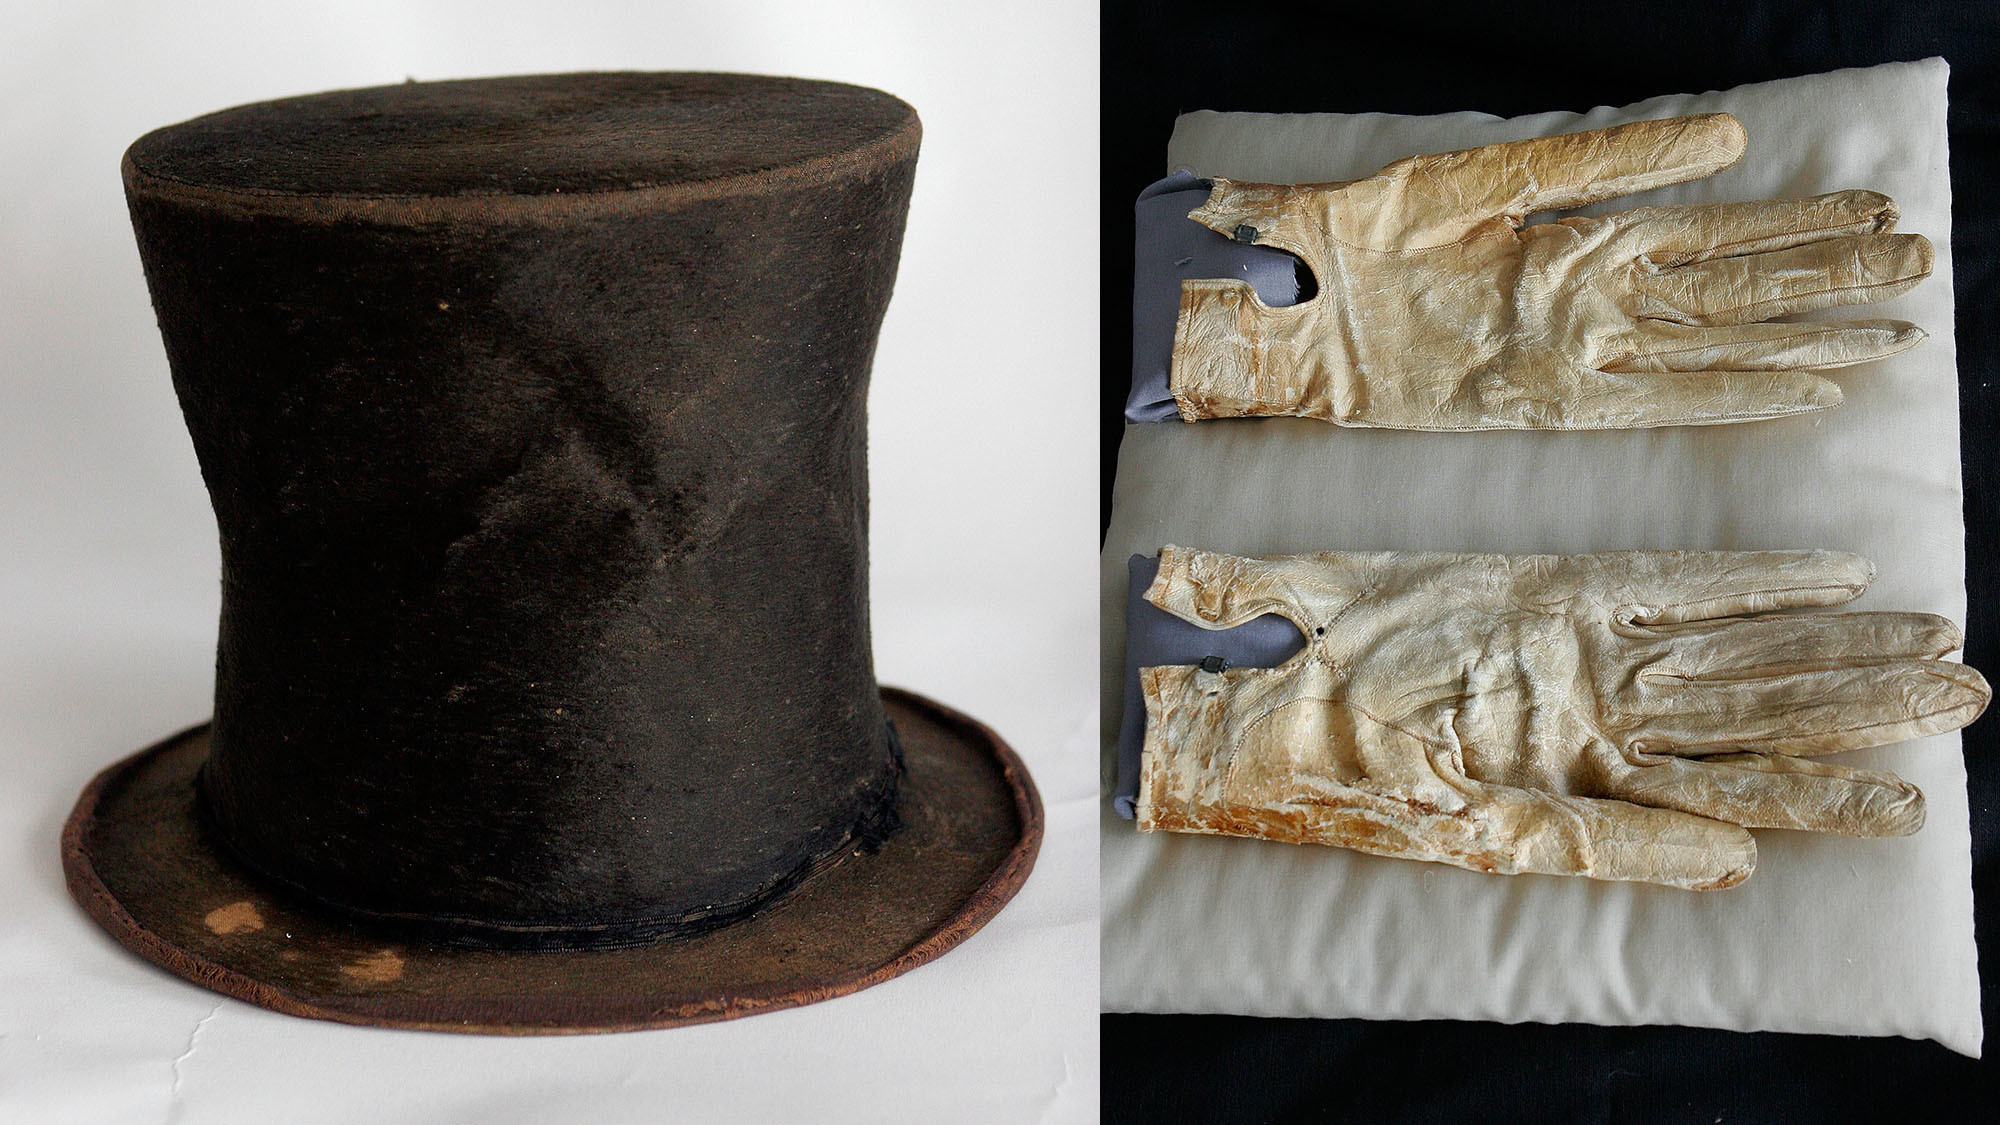 Lawmakers to ask questions about supposed Lincoln hat, museum future